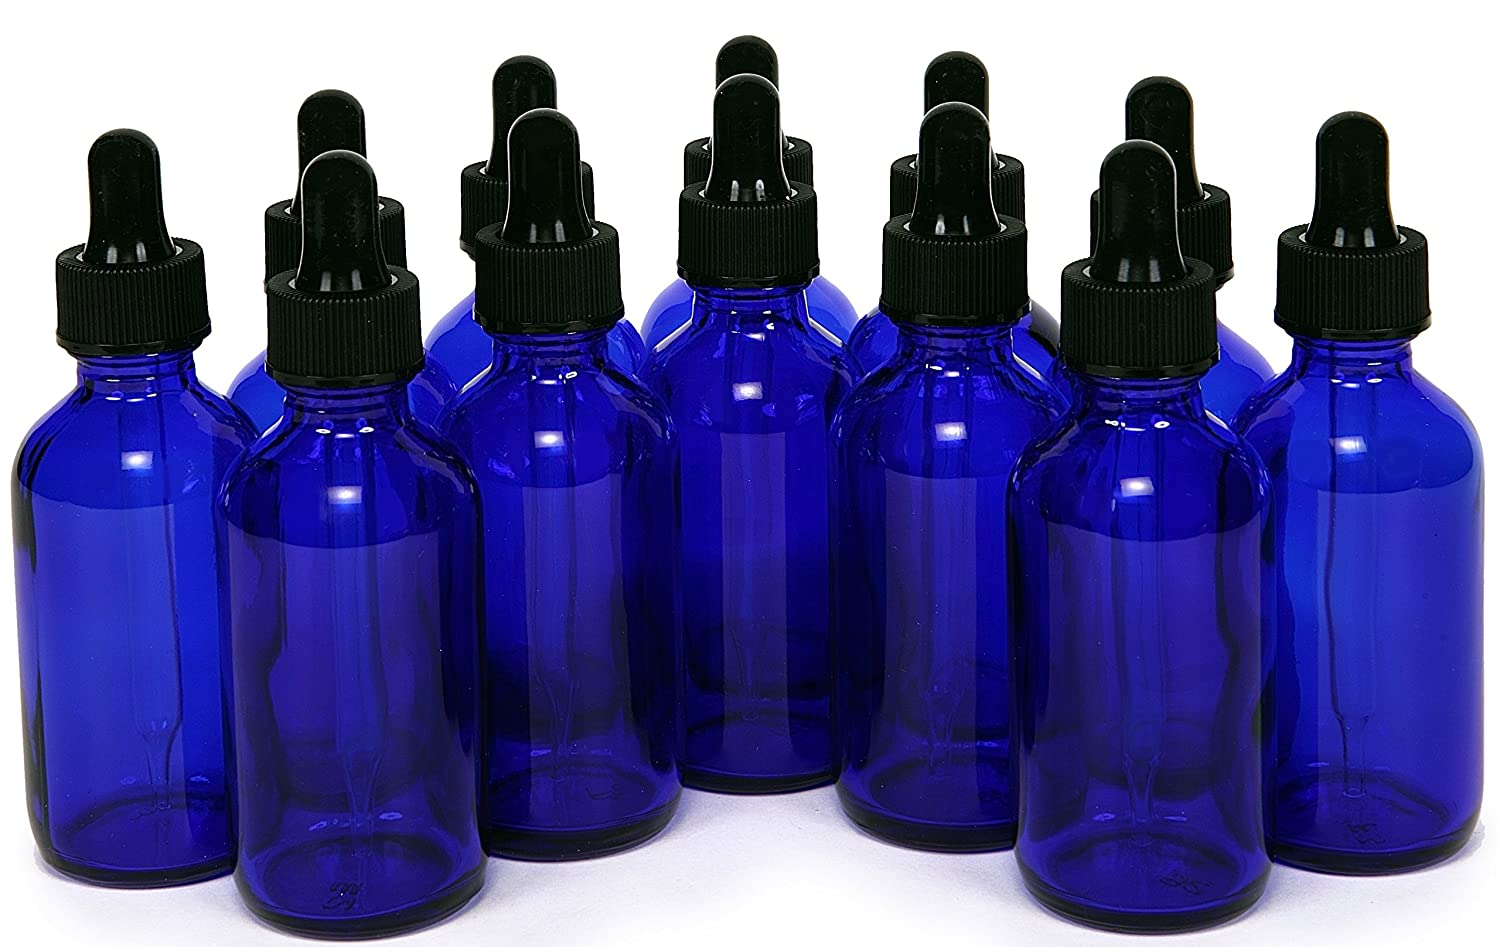 12, Cobalt Blue, 2 oz, Glass Bottles, with Glass Eye Droppers